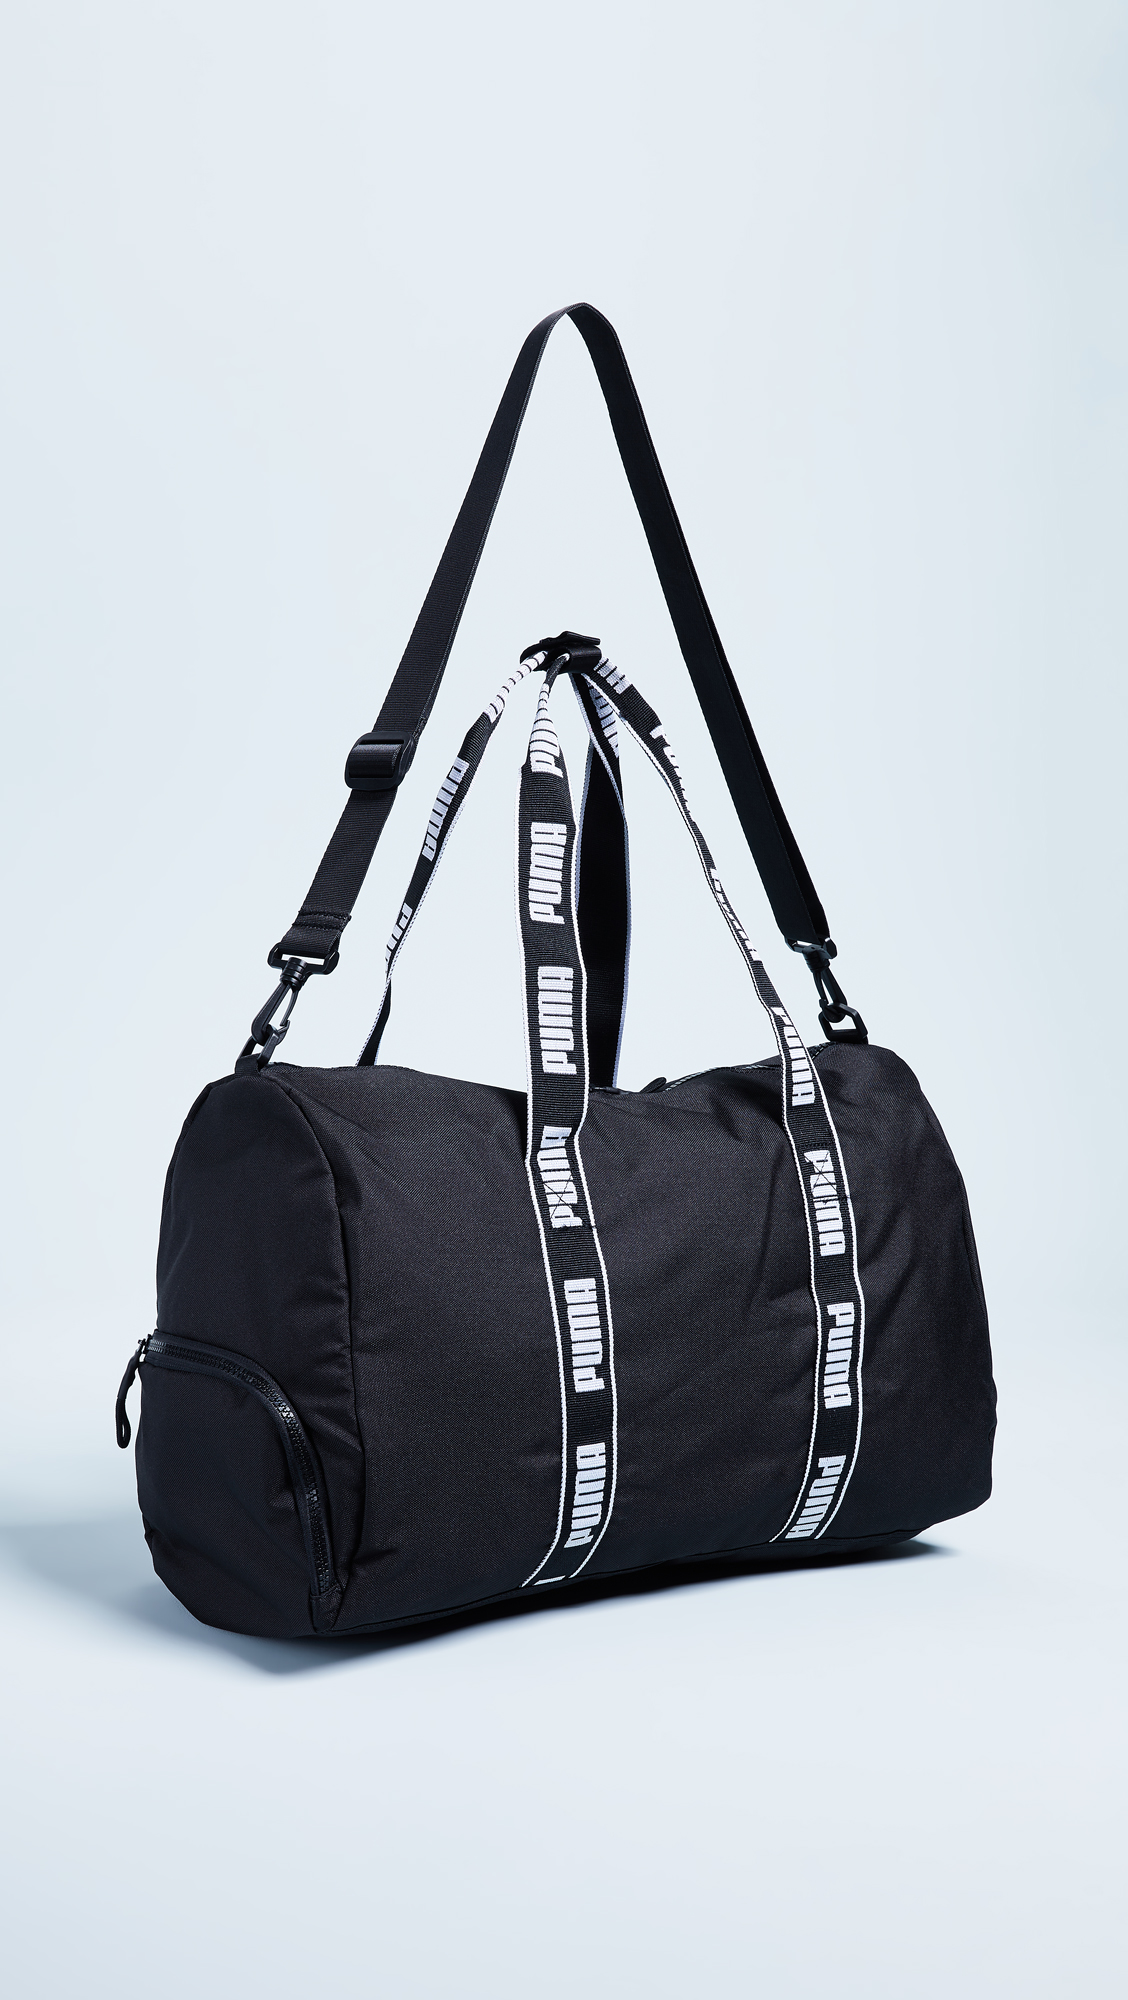 puma duffle gym bag Sale 081ce2298ed0c